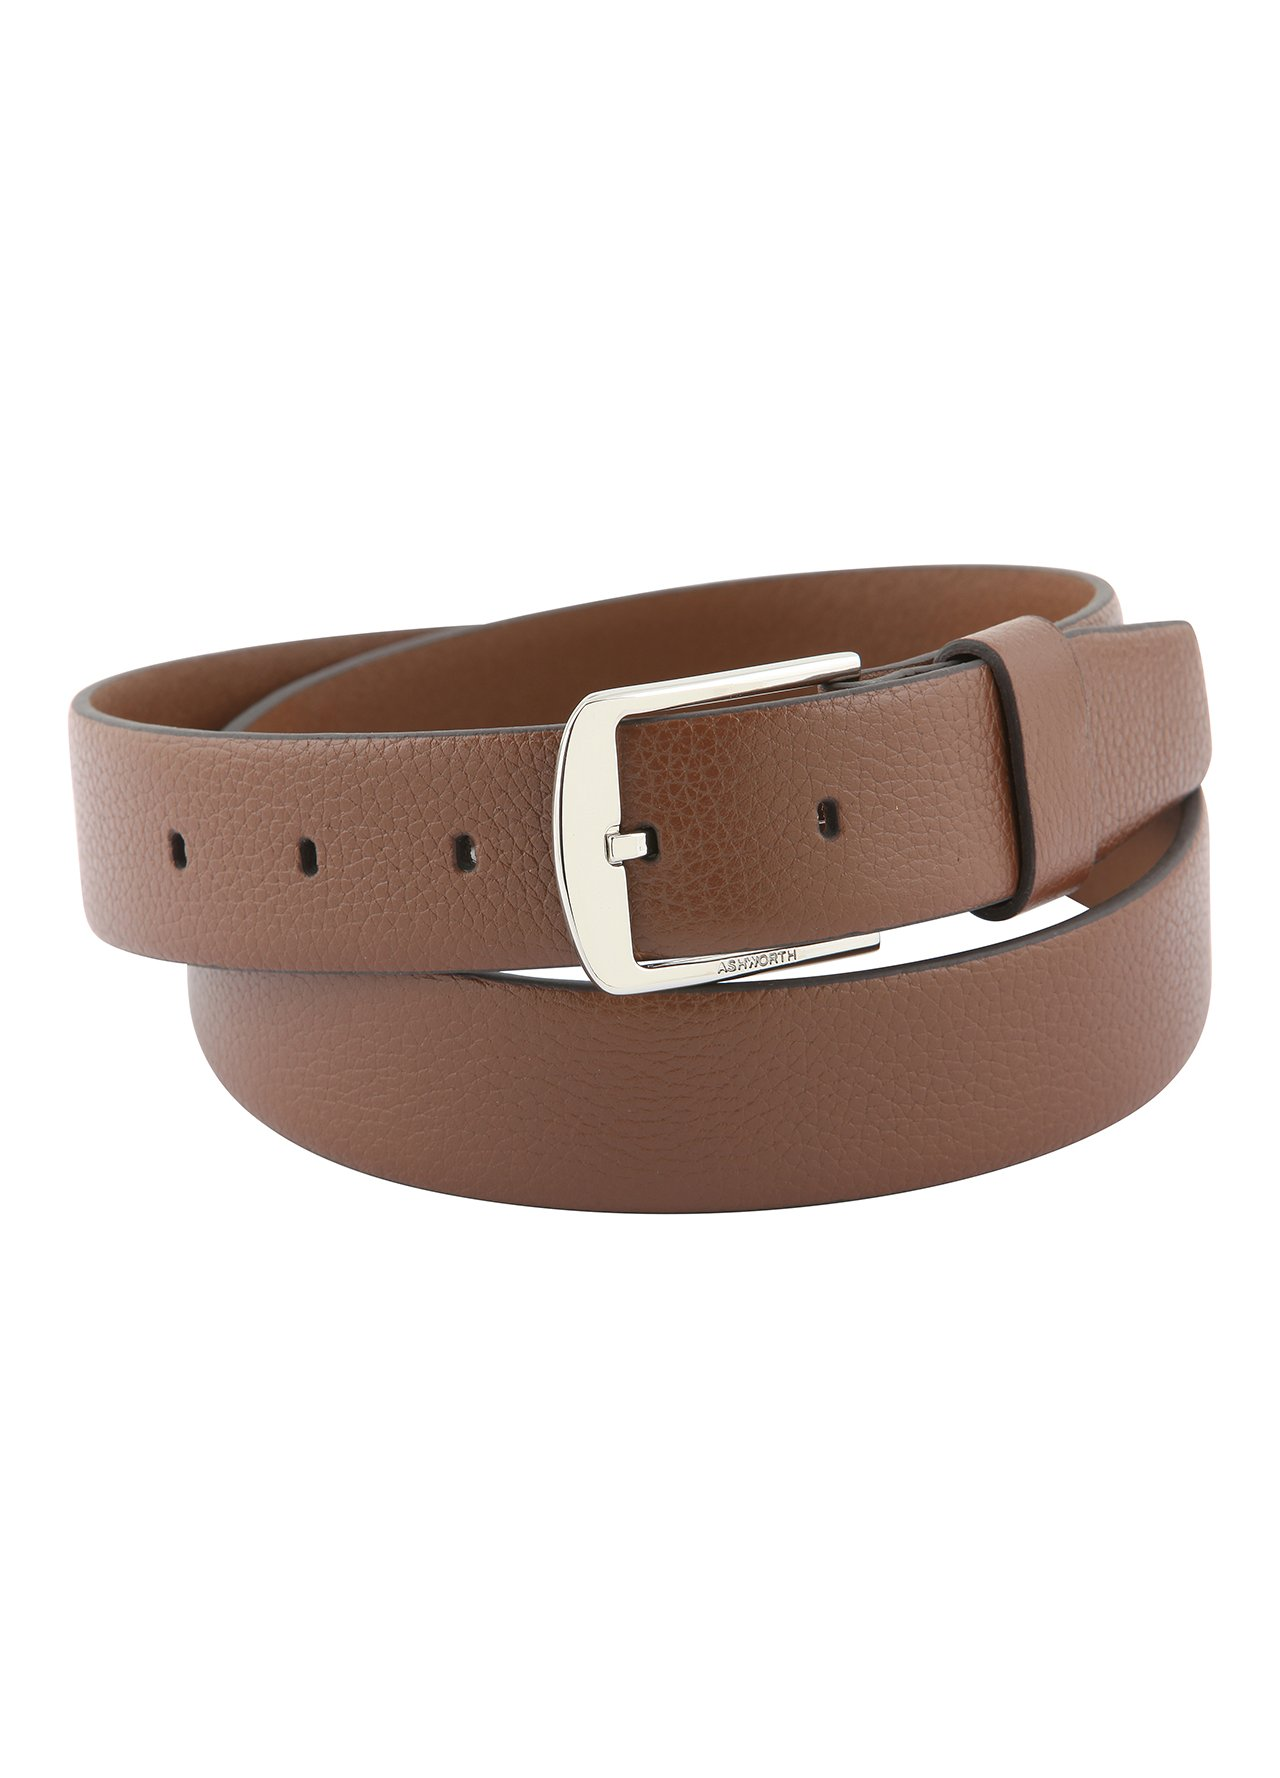 accessories belts brown ashworth dress belt c964